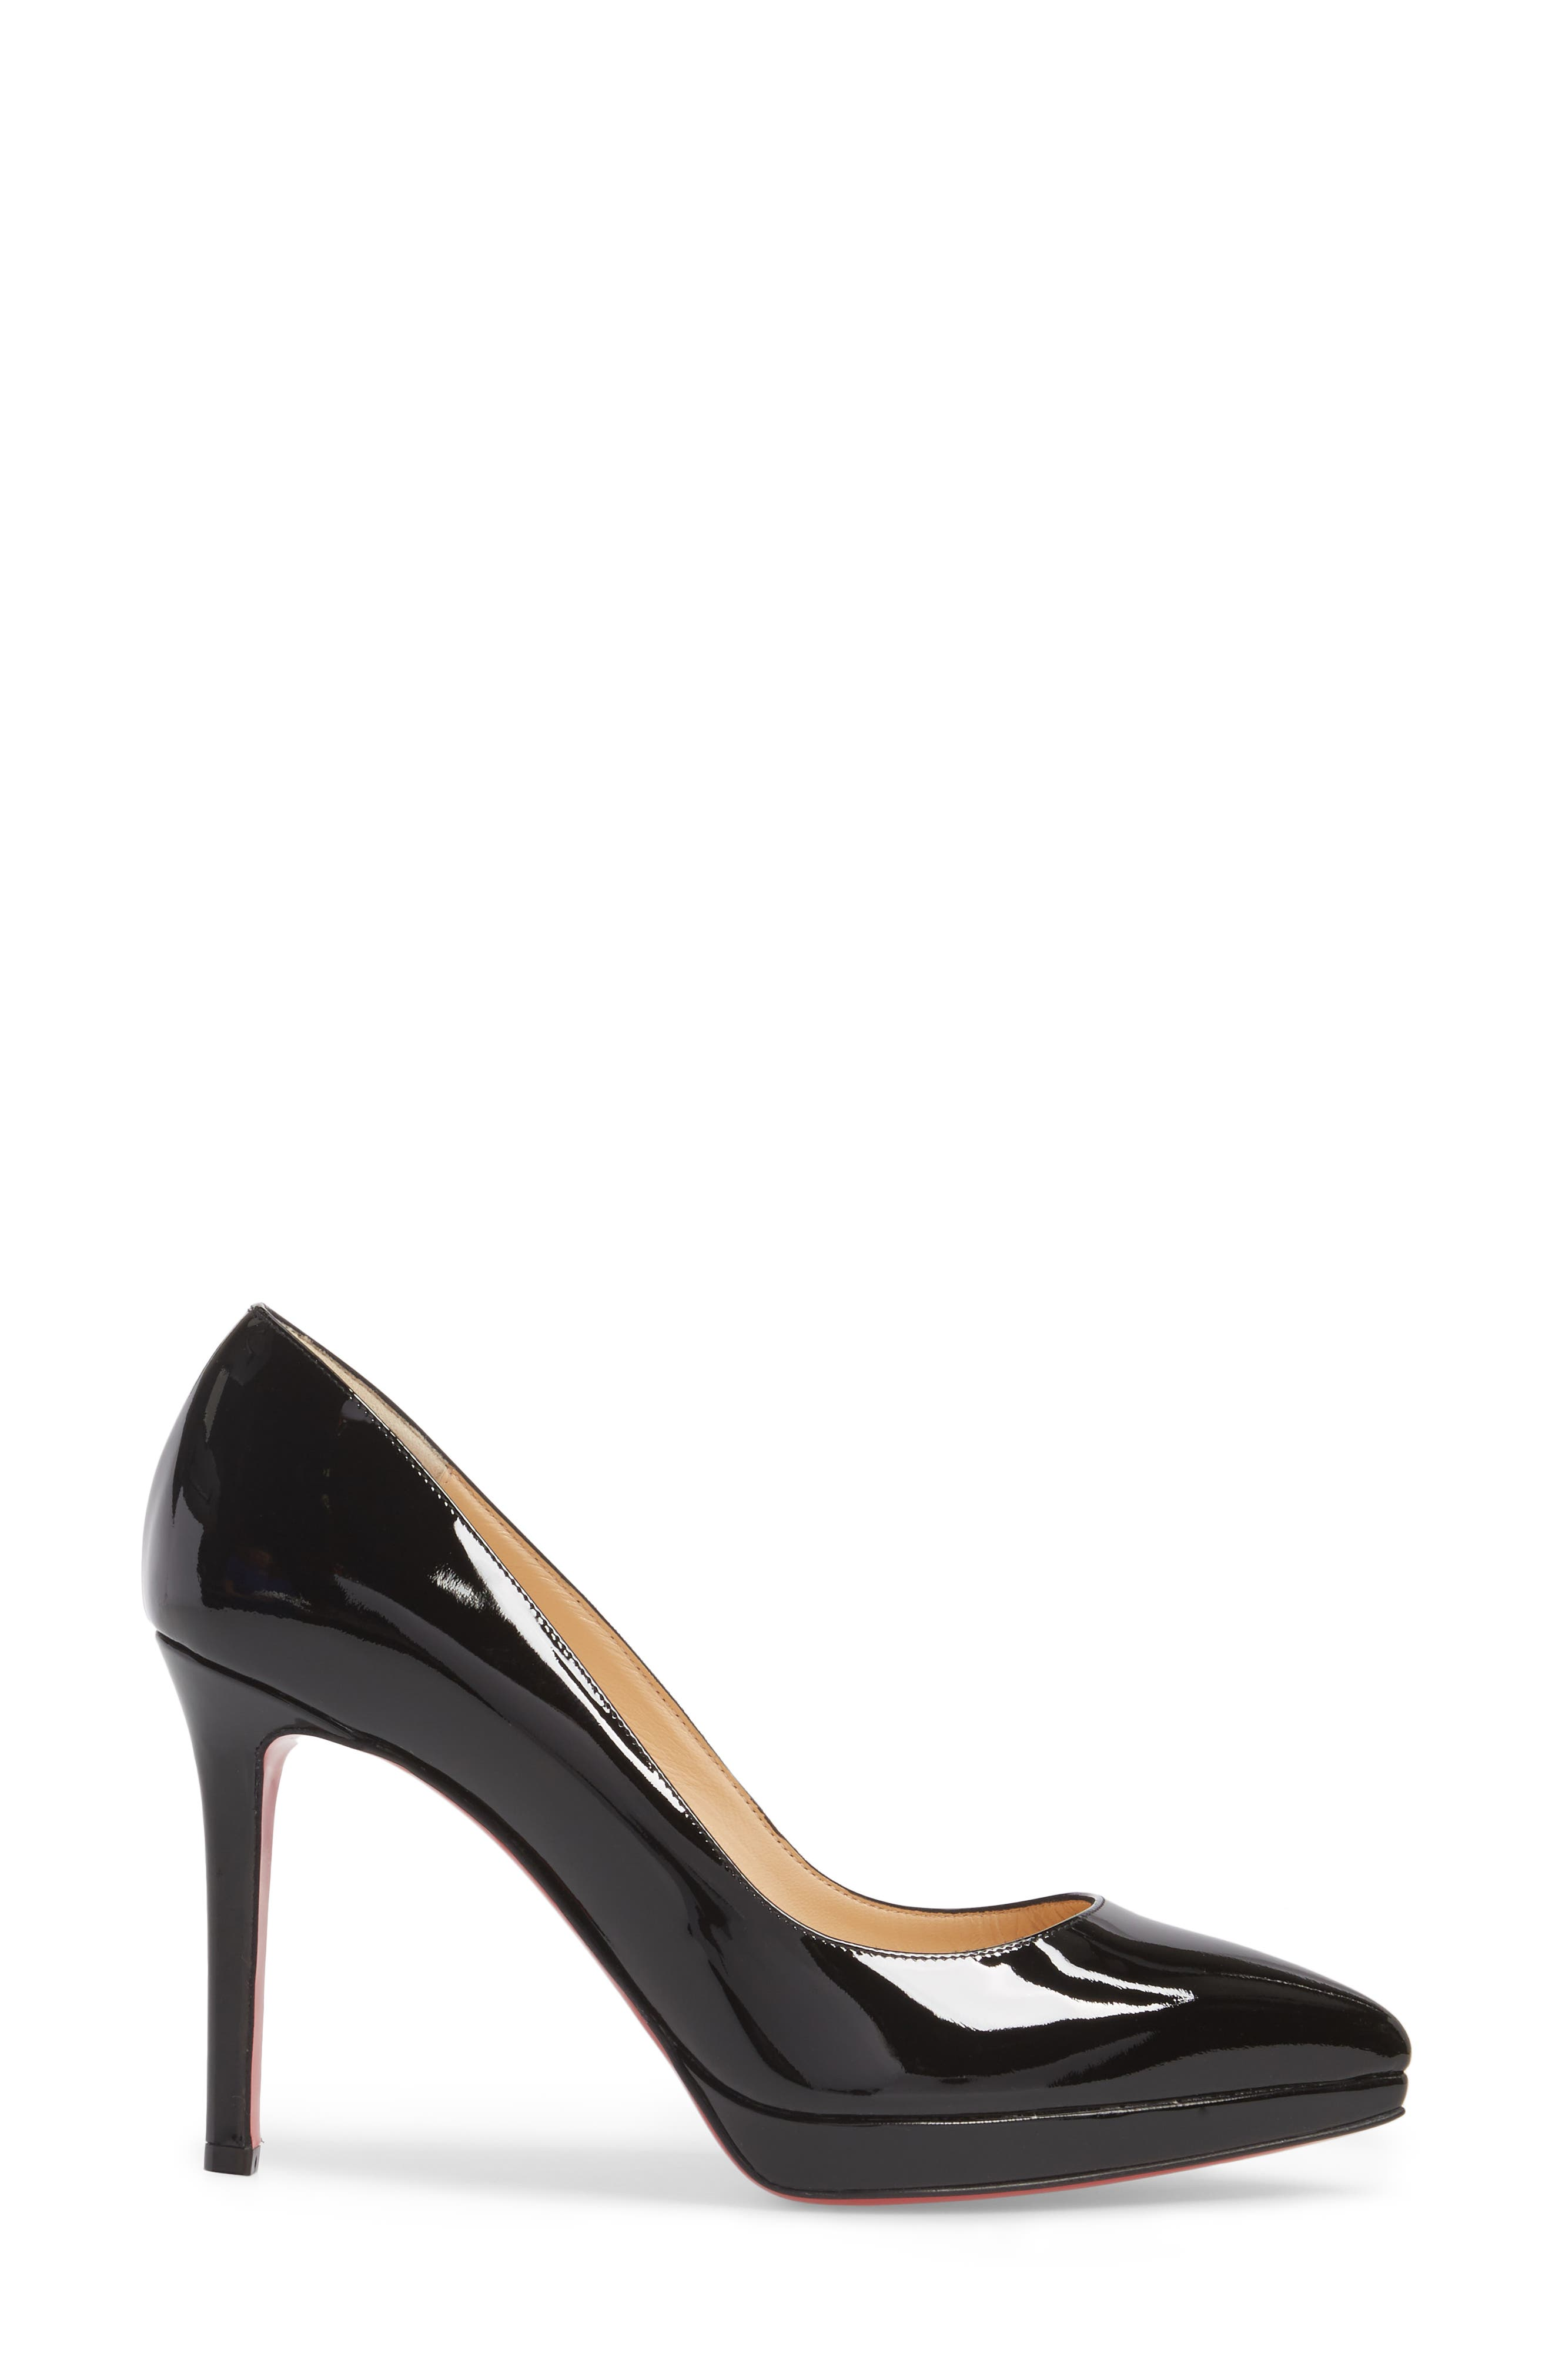 Pigalle Plato Pointy Toe Platform Pump,                             Alternate thumbnail 3, color,                             BLACK PATENT